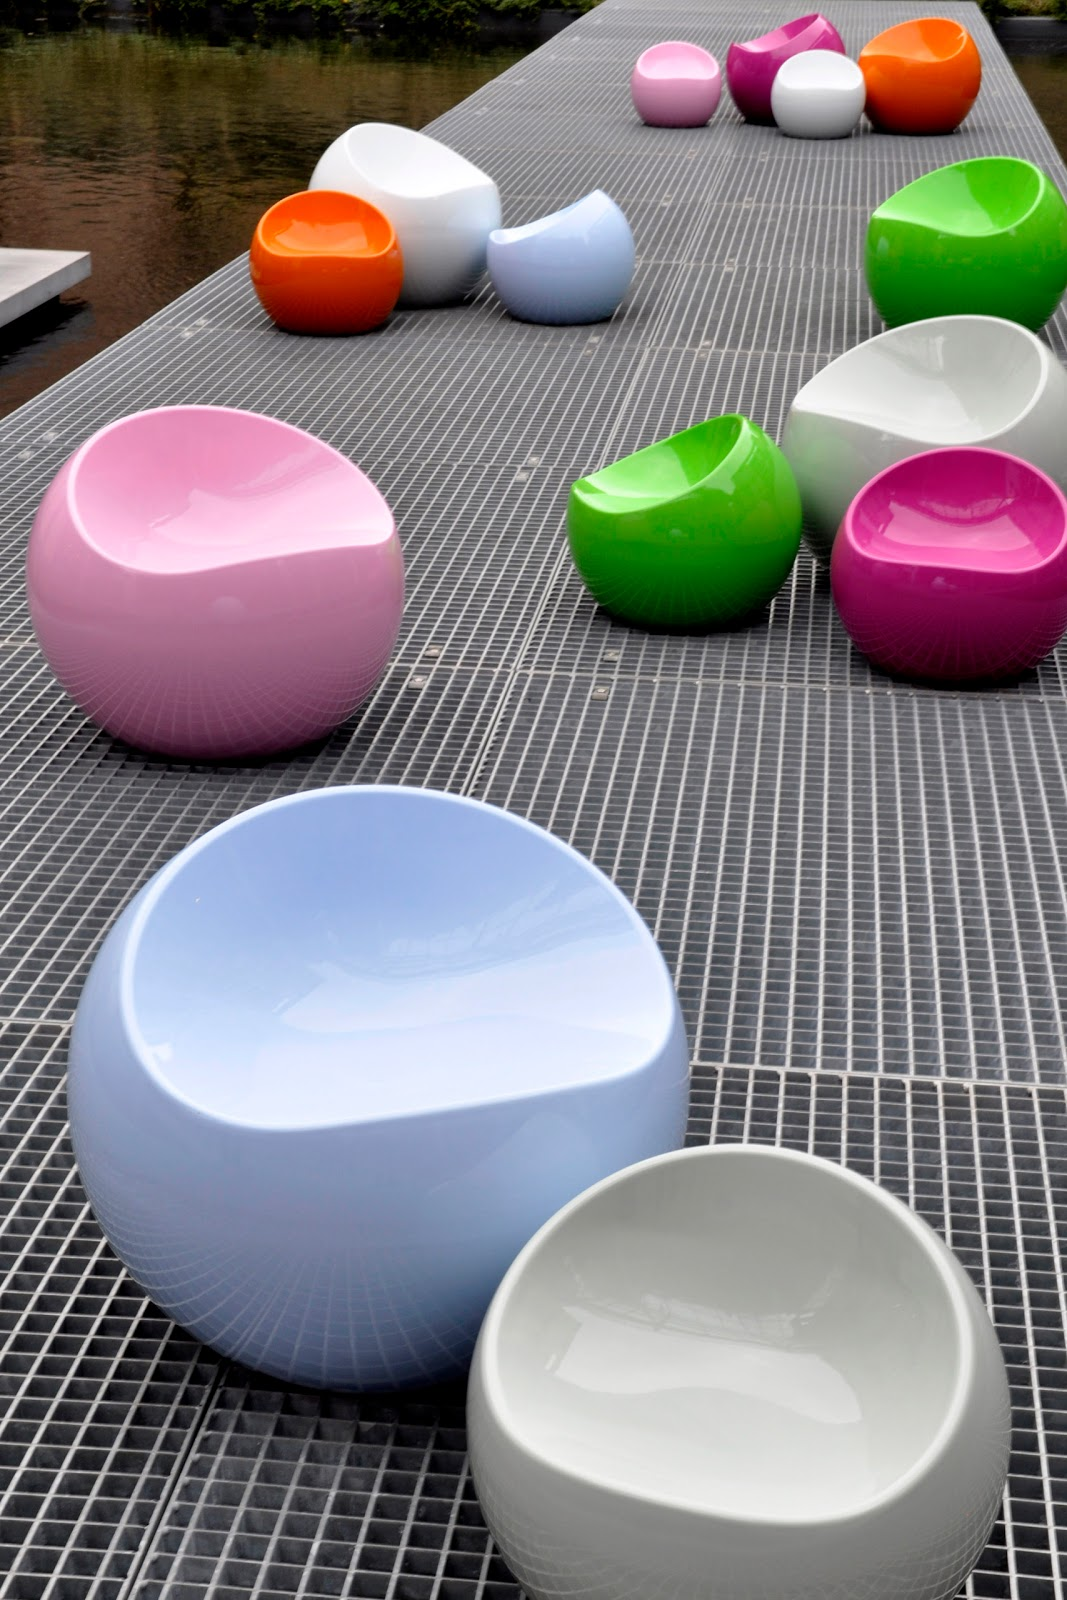 Smart Living Objects: And so it begins